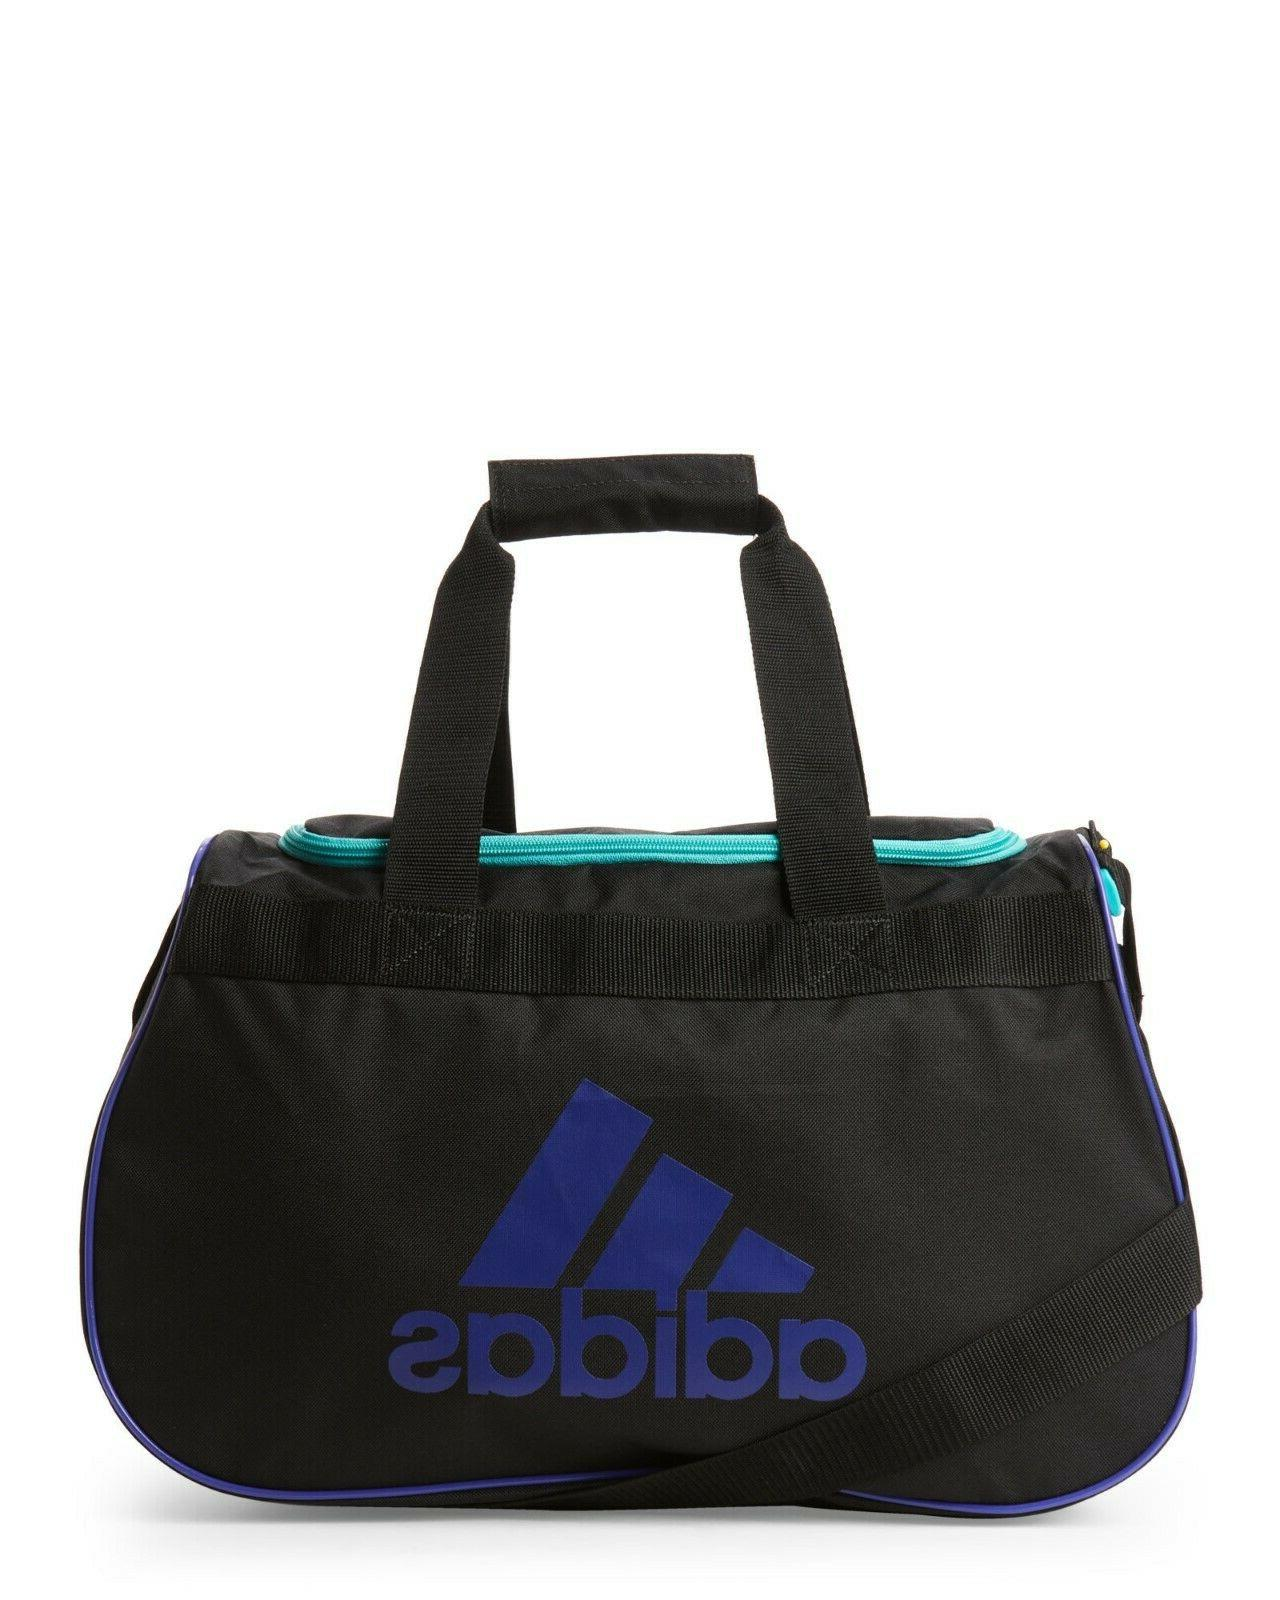 ADIDAS Diablo TOP Locker Travel